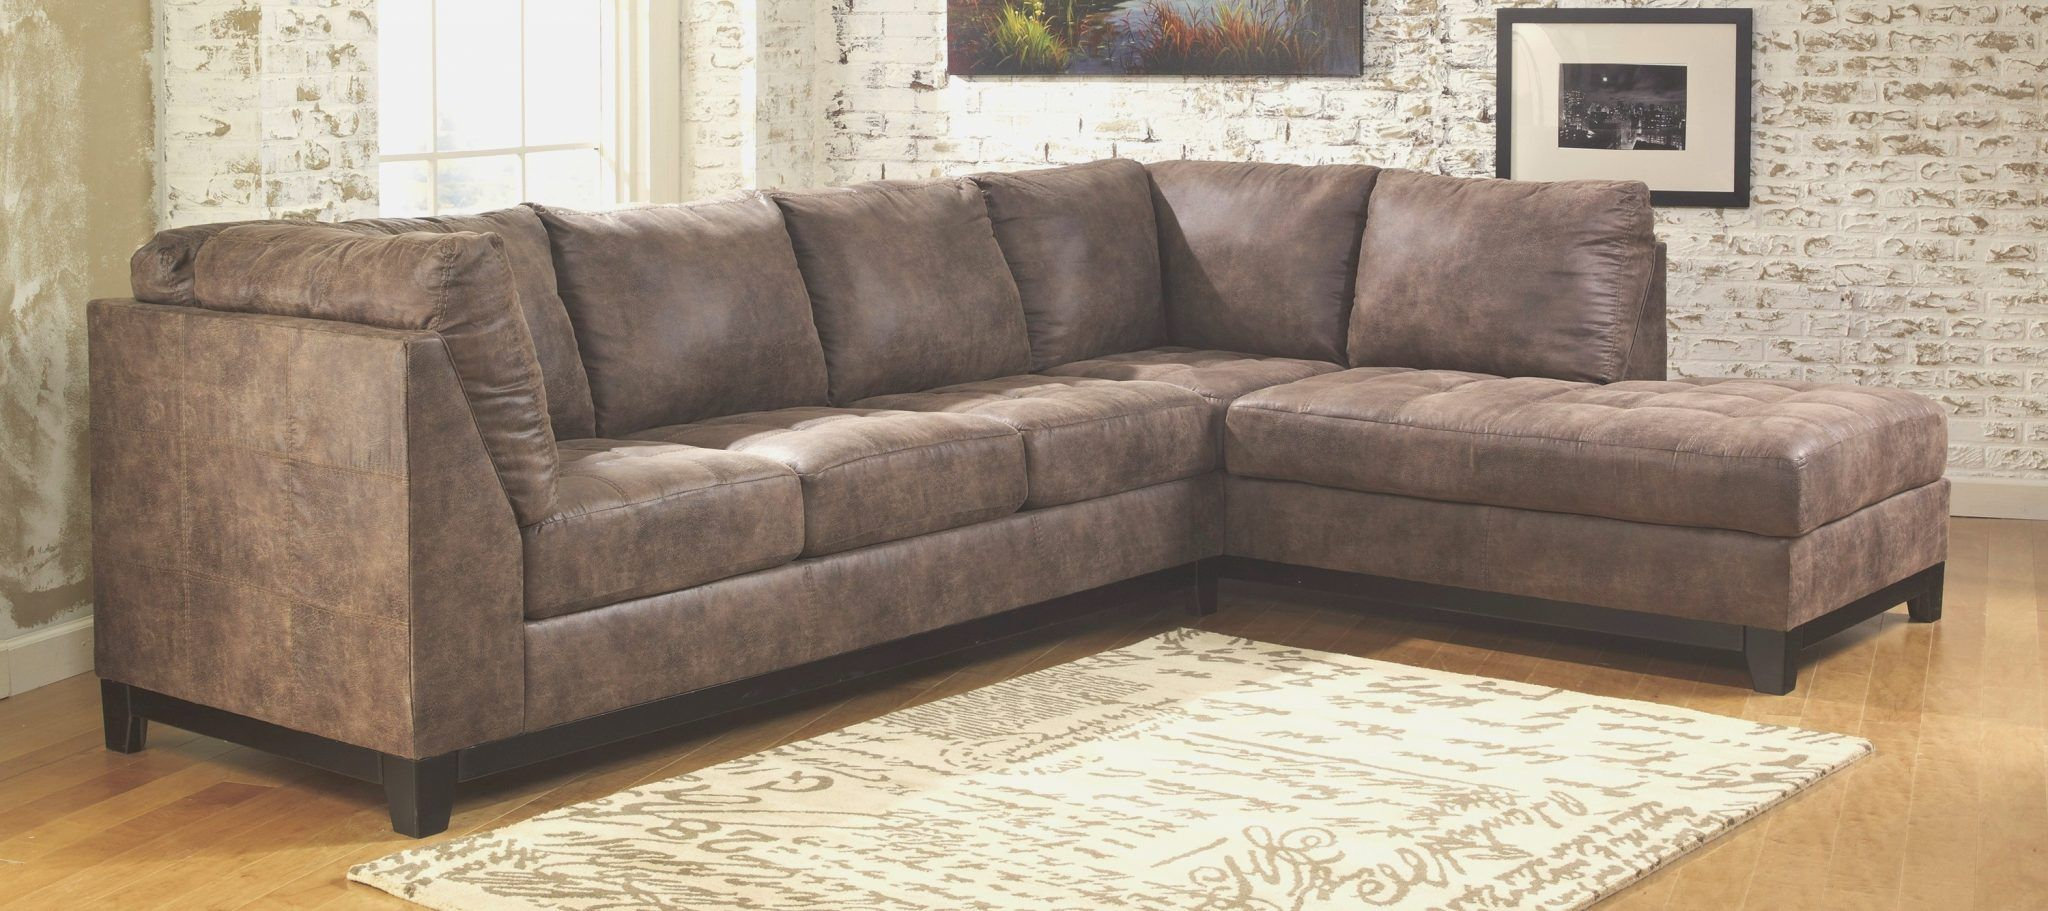 ashley sofa and loveseat. Ashley Furniture Living Room Sectionals - Cambridge Amber Set Sofa Loveseat, Couches, And Loveseat